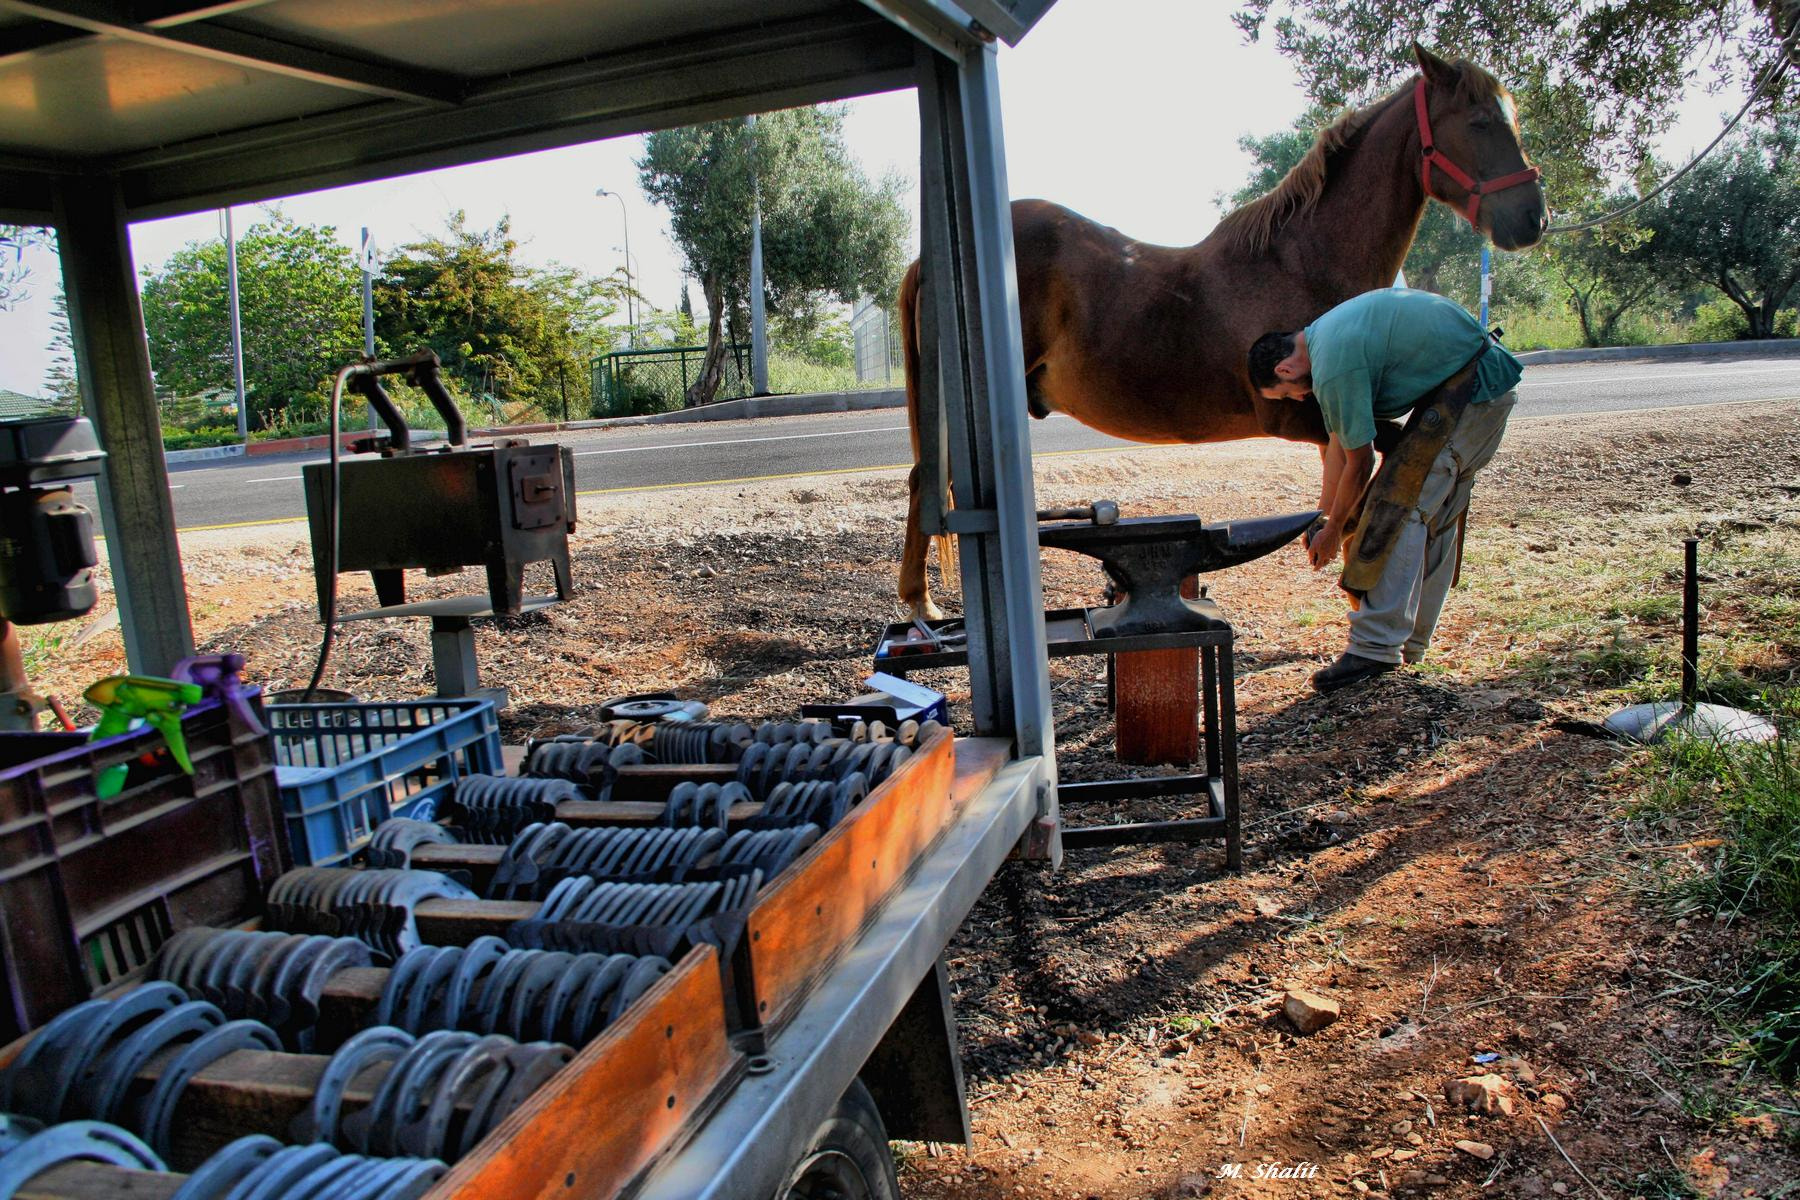 Photograph horse-shoe maker by Moshe Shalit on 500px